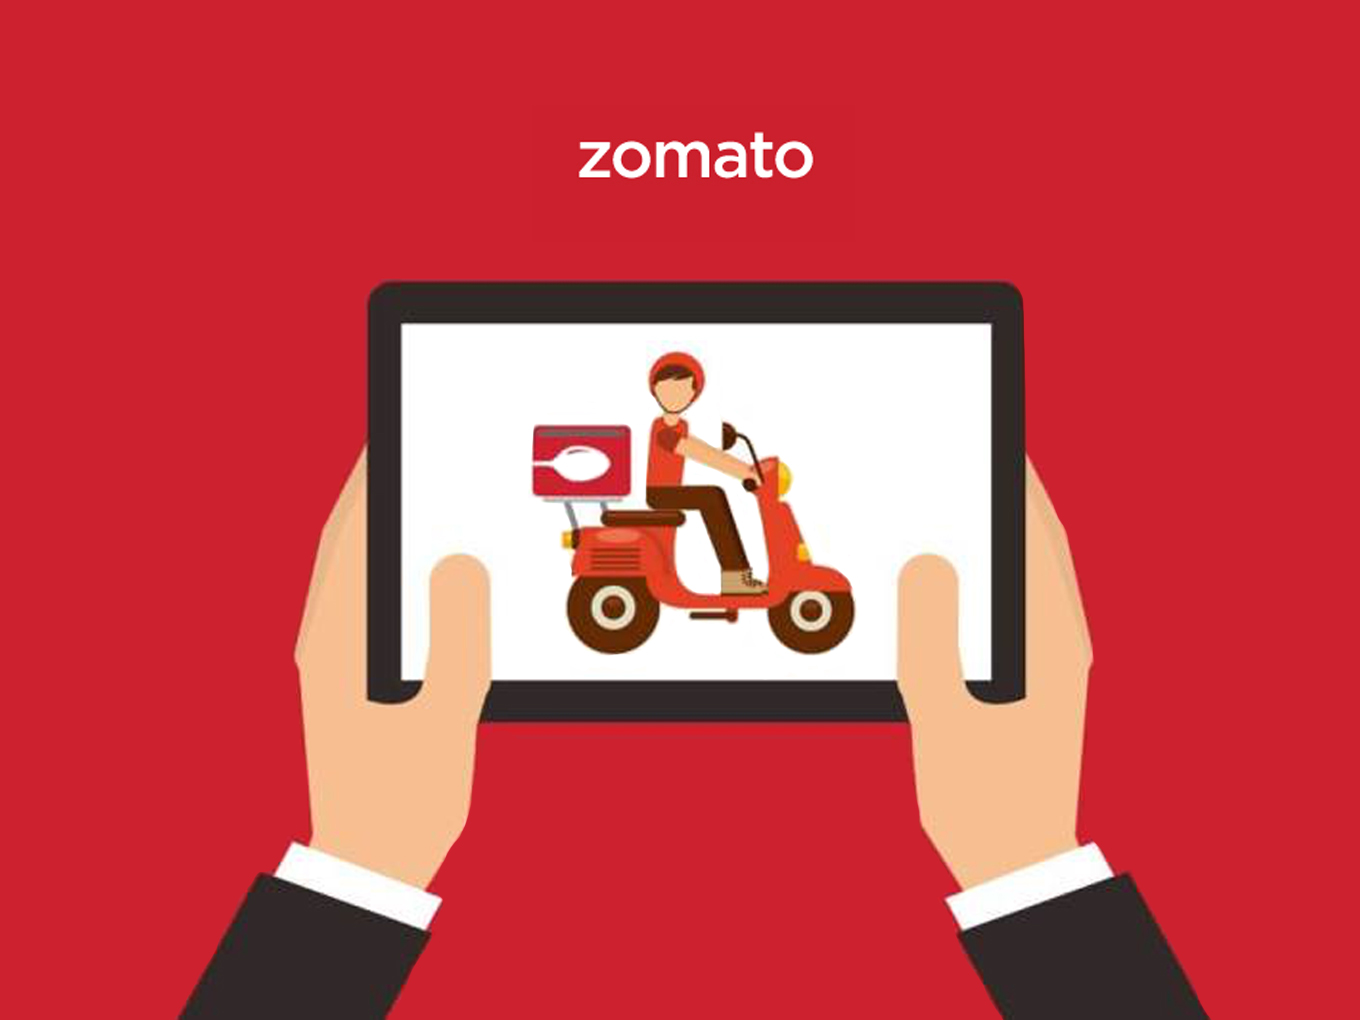 What Is Zomato's Business Model?